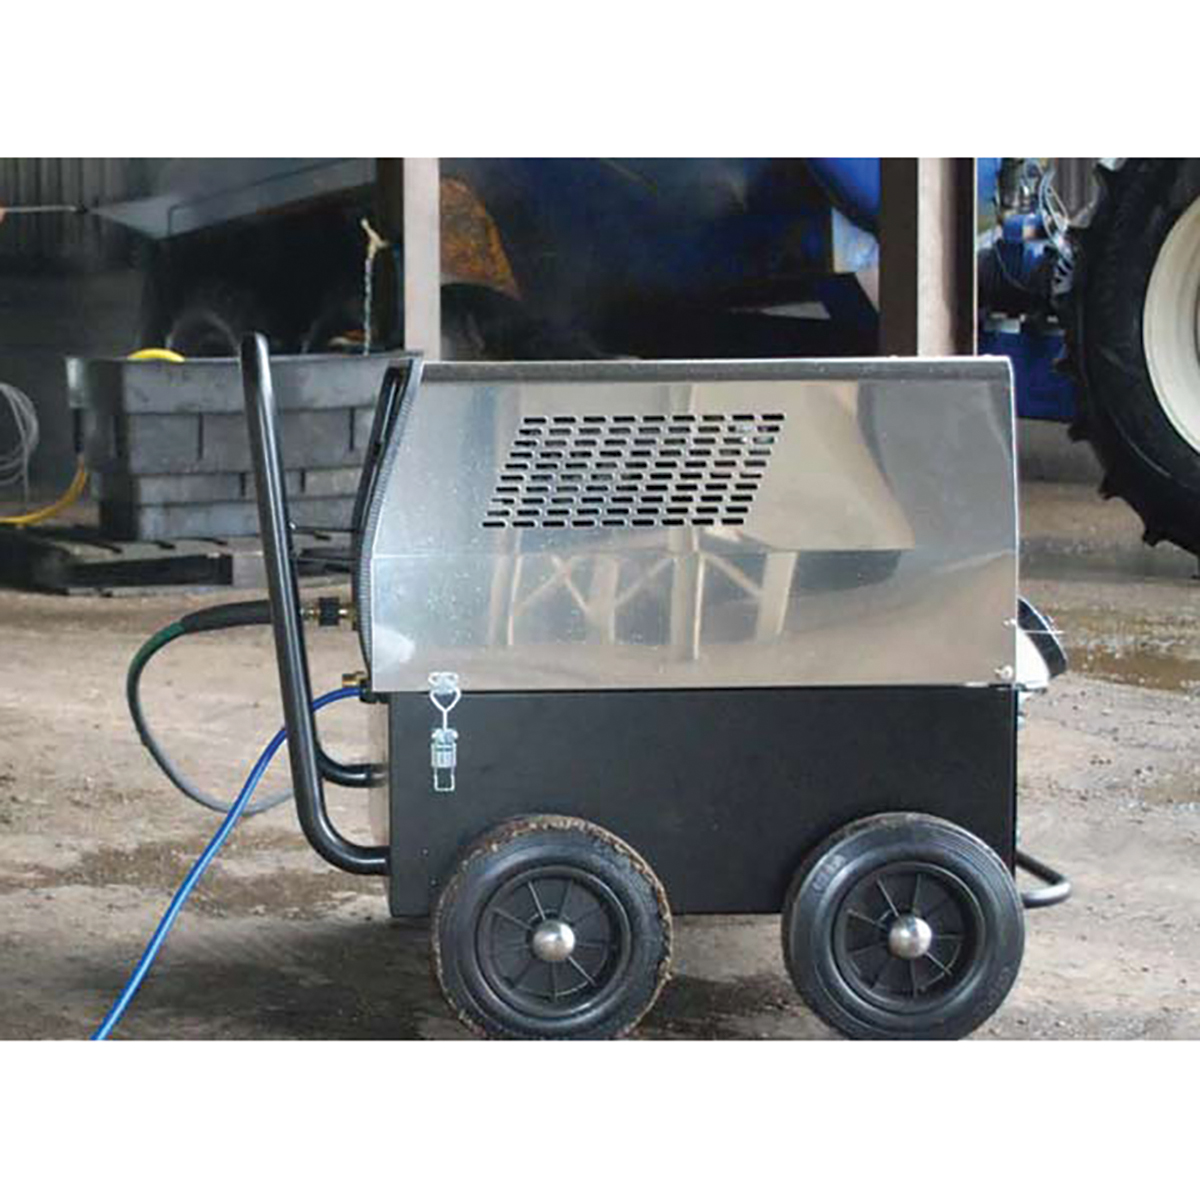 Hot Box Pressure Washer/Steam Heater - 240v only